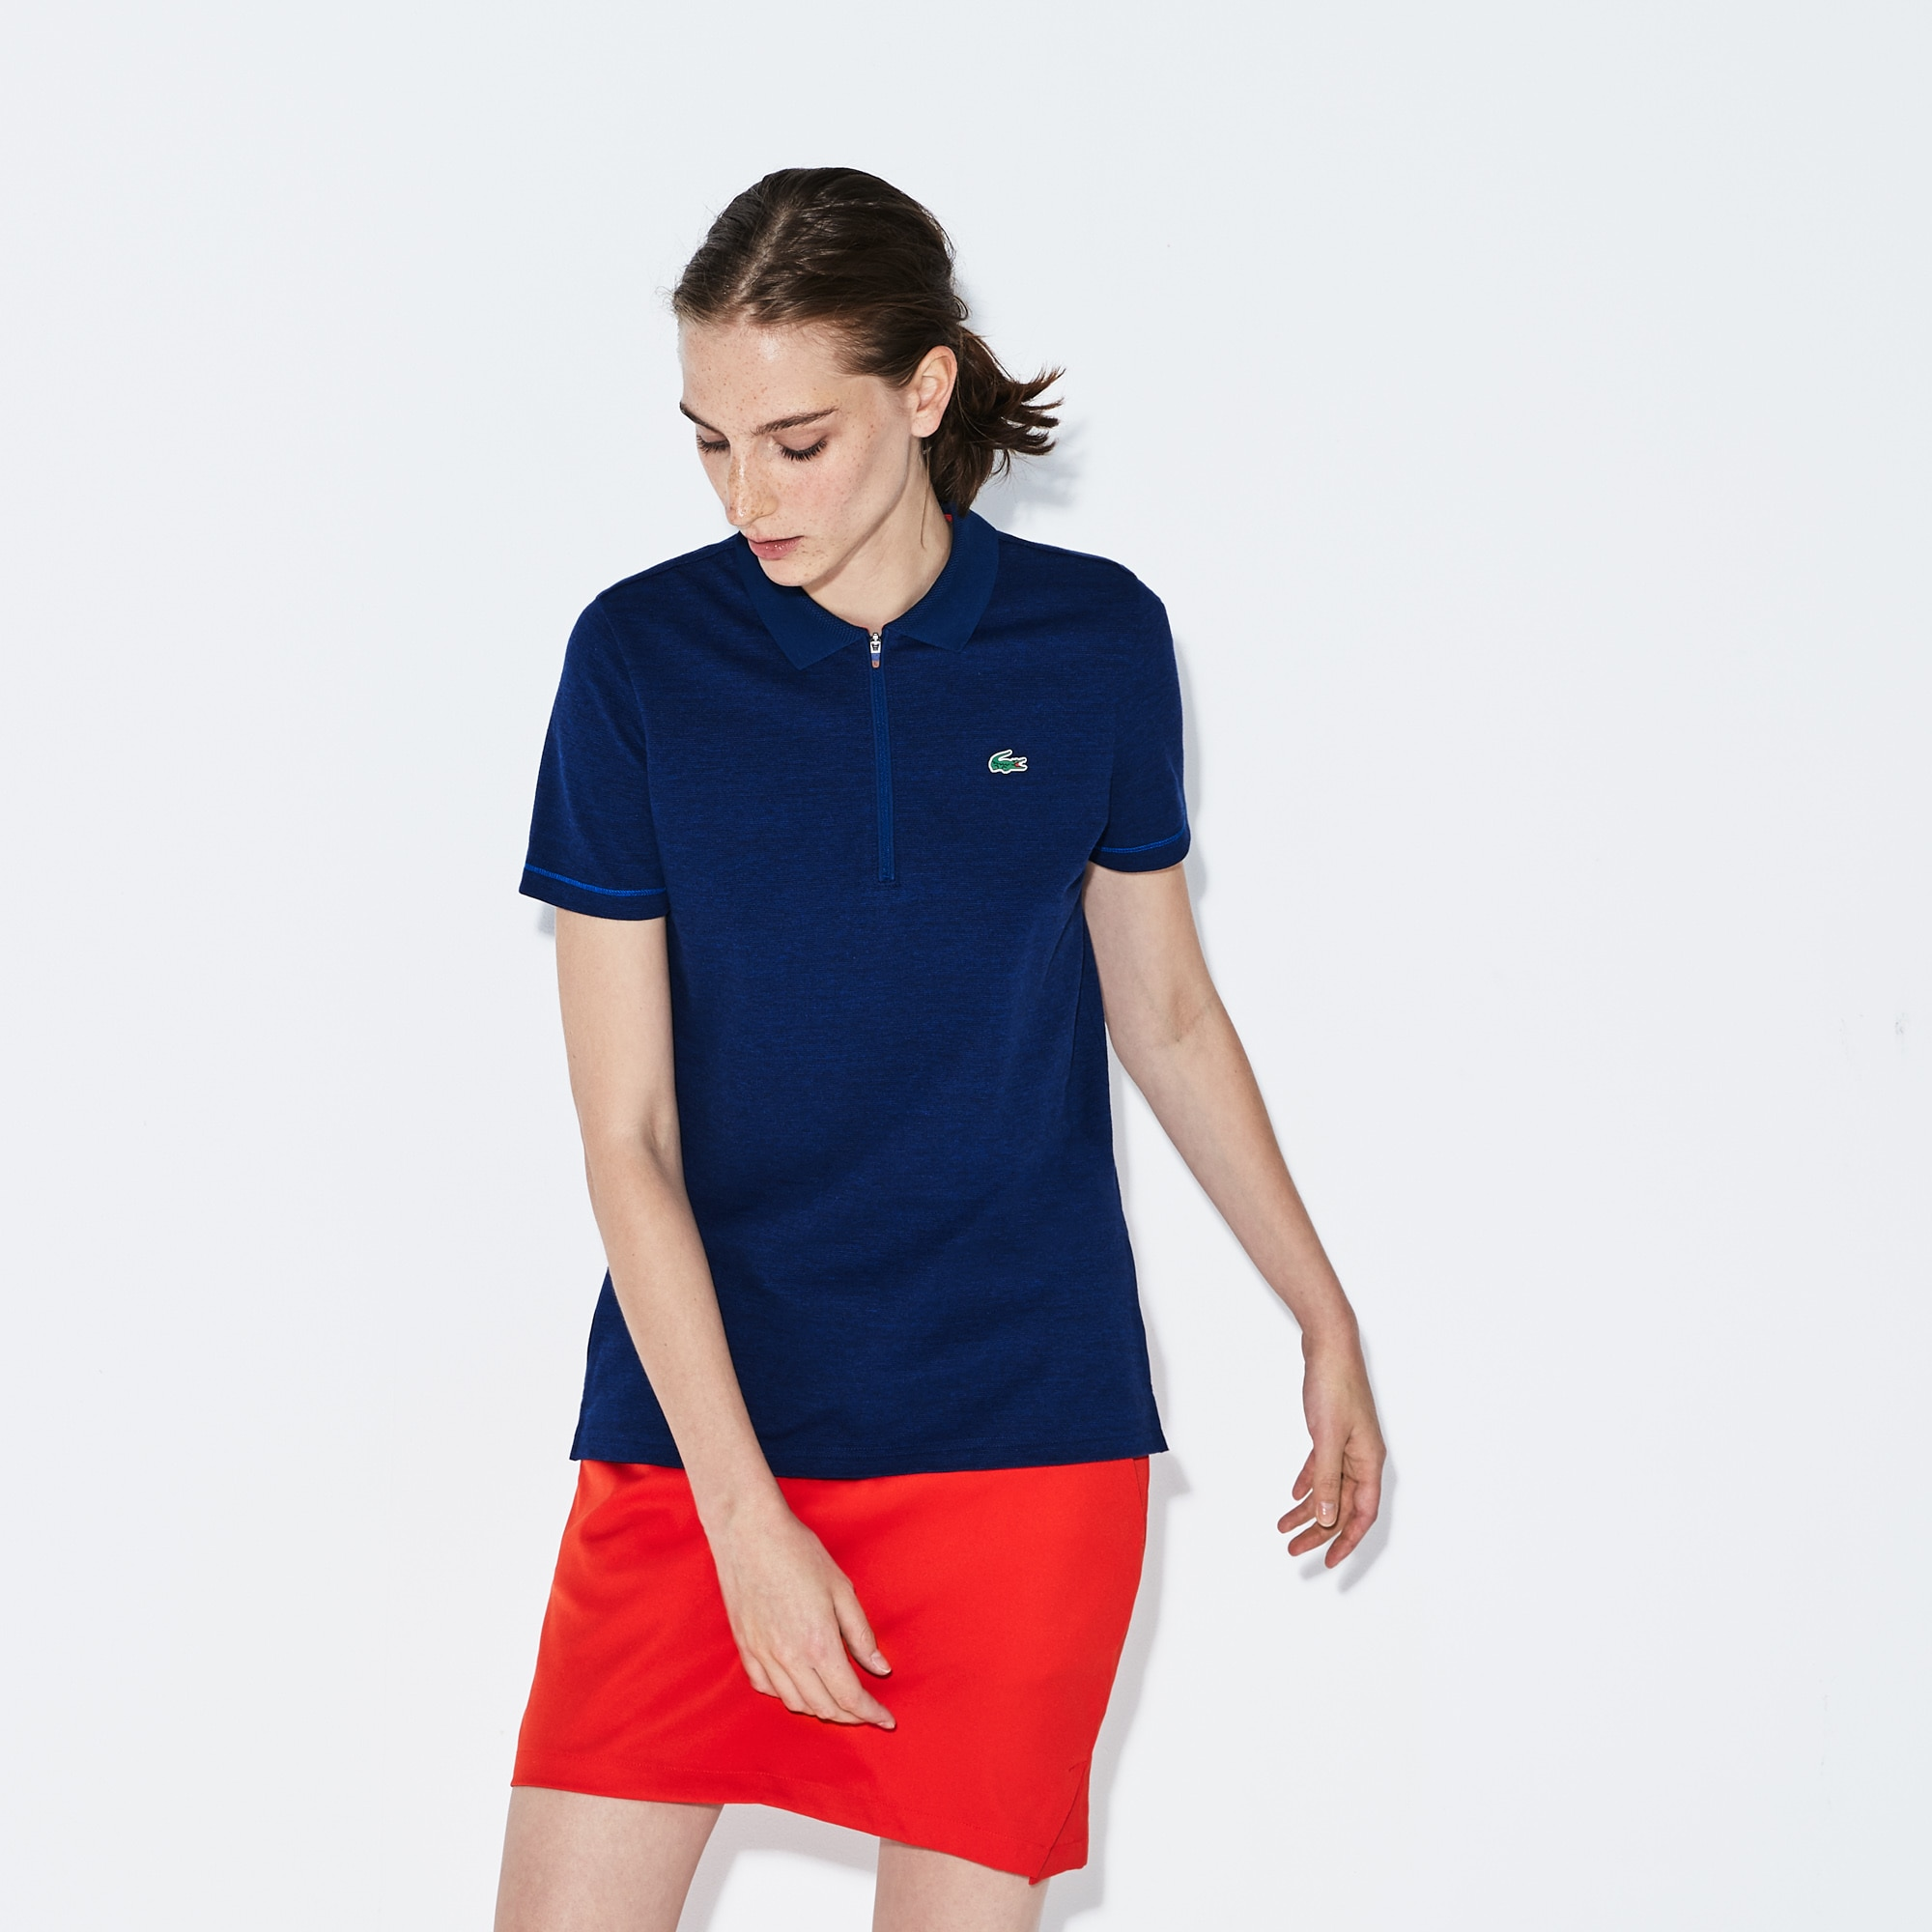 Women's SPORT Ultra-Light Stretch Cotton Golf Polo